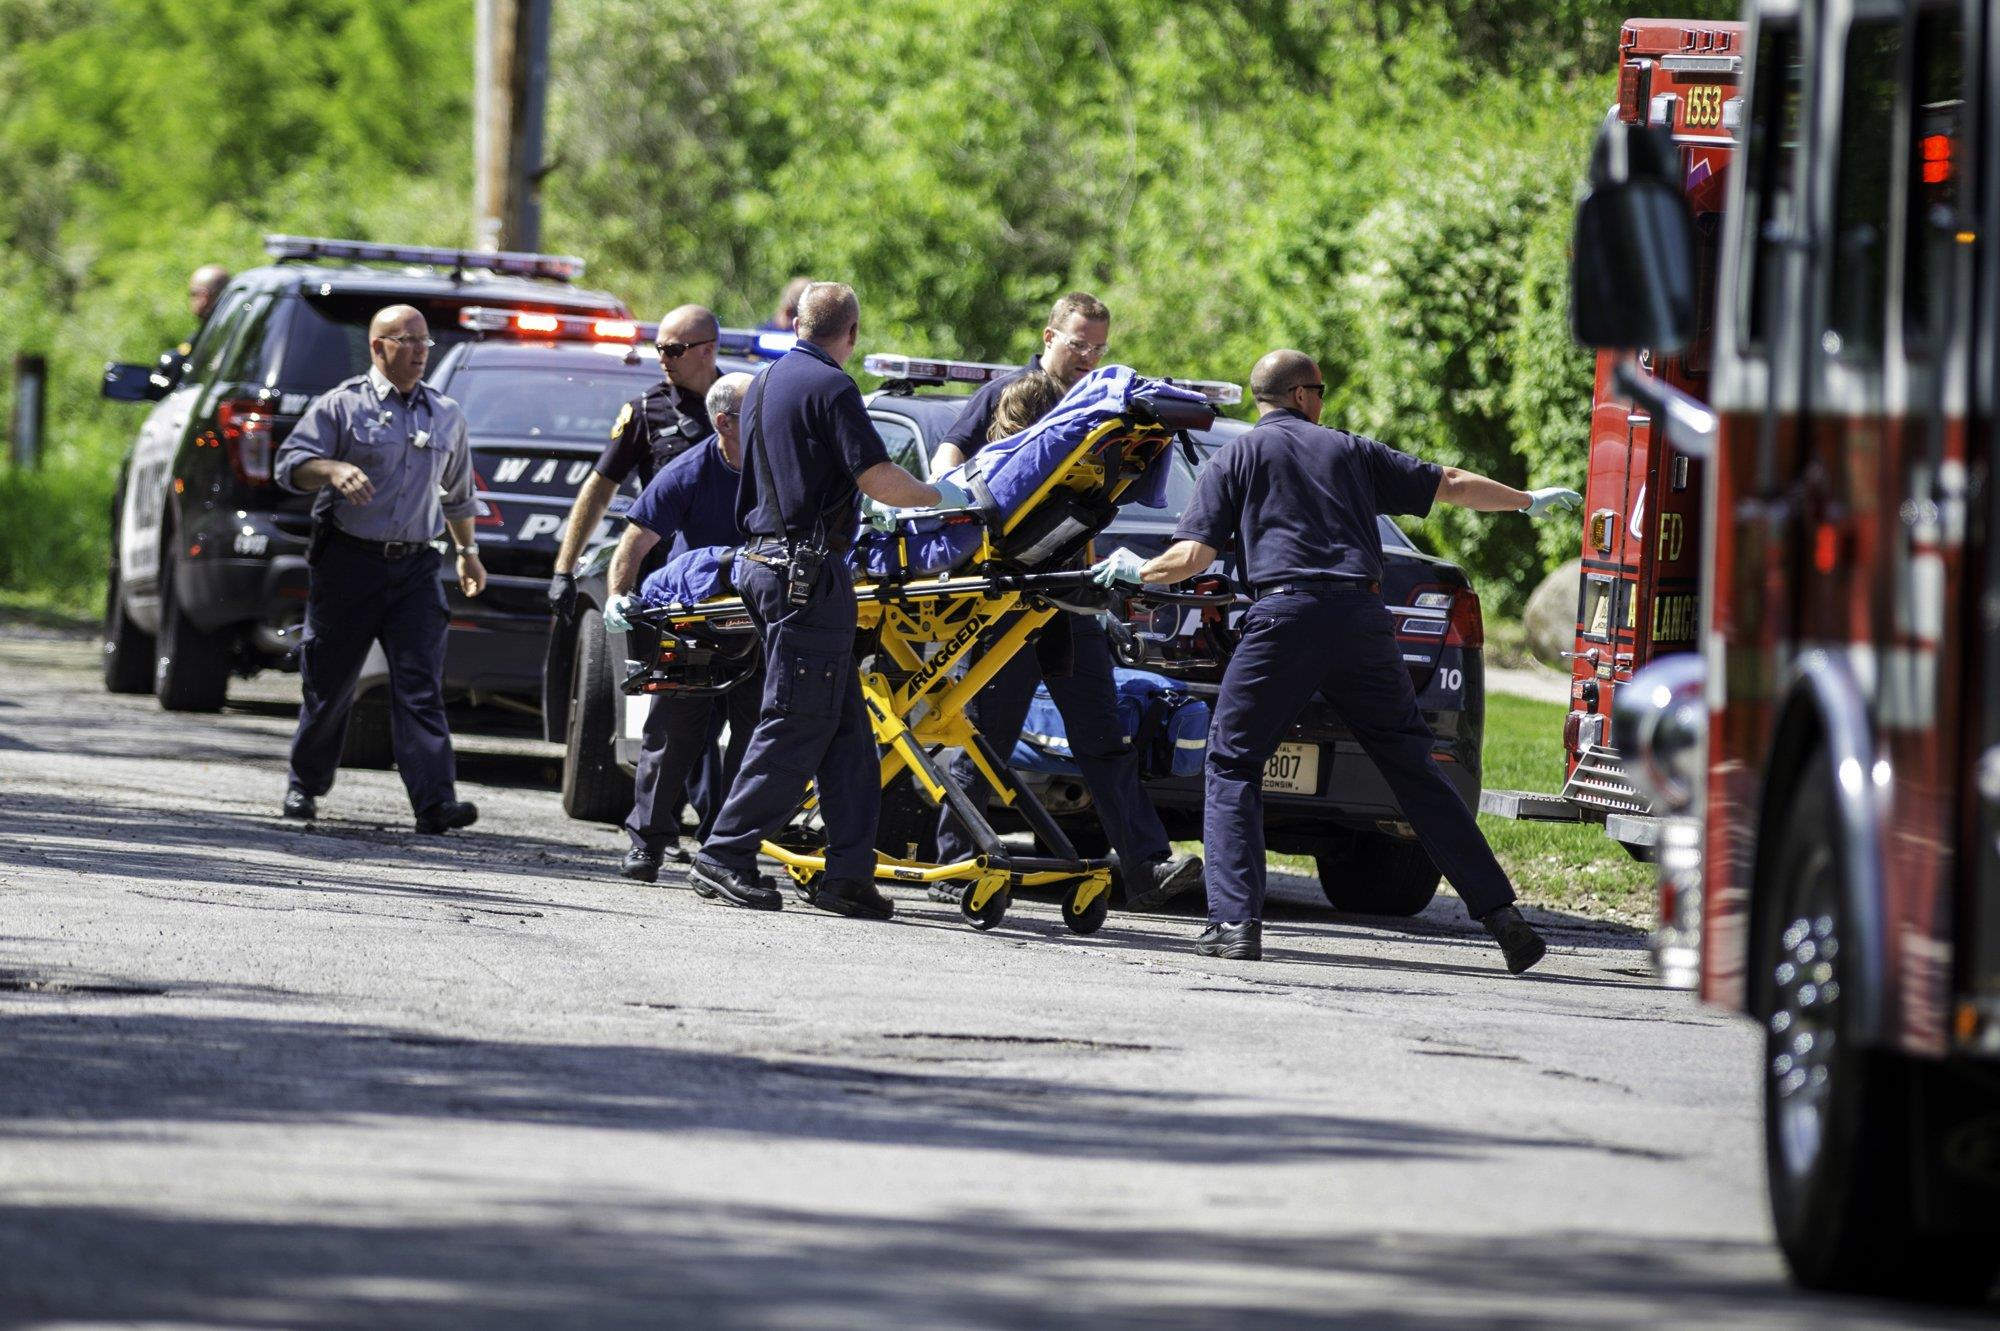 Image: Rescue workers take a stabbing victim to the ambulance in Waukesha, Wis., on May 31